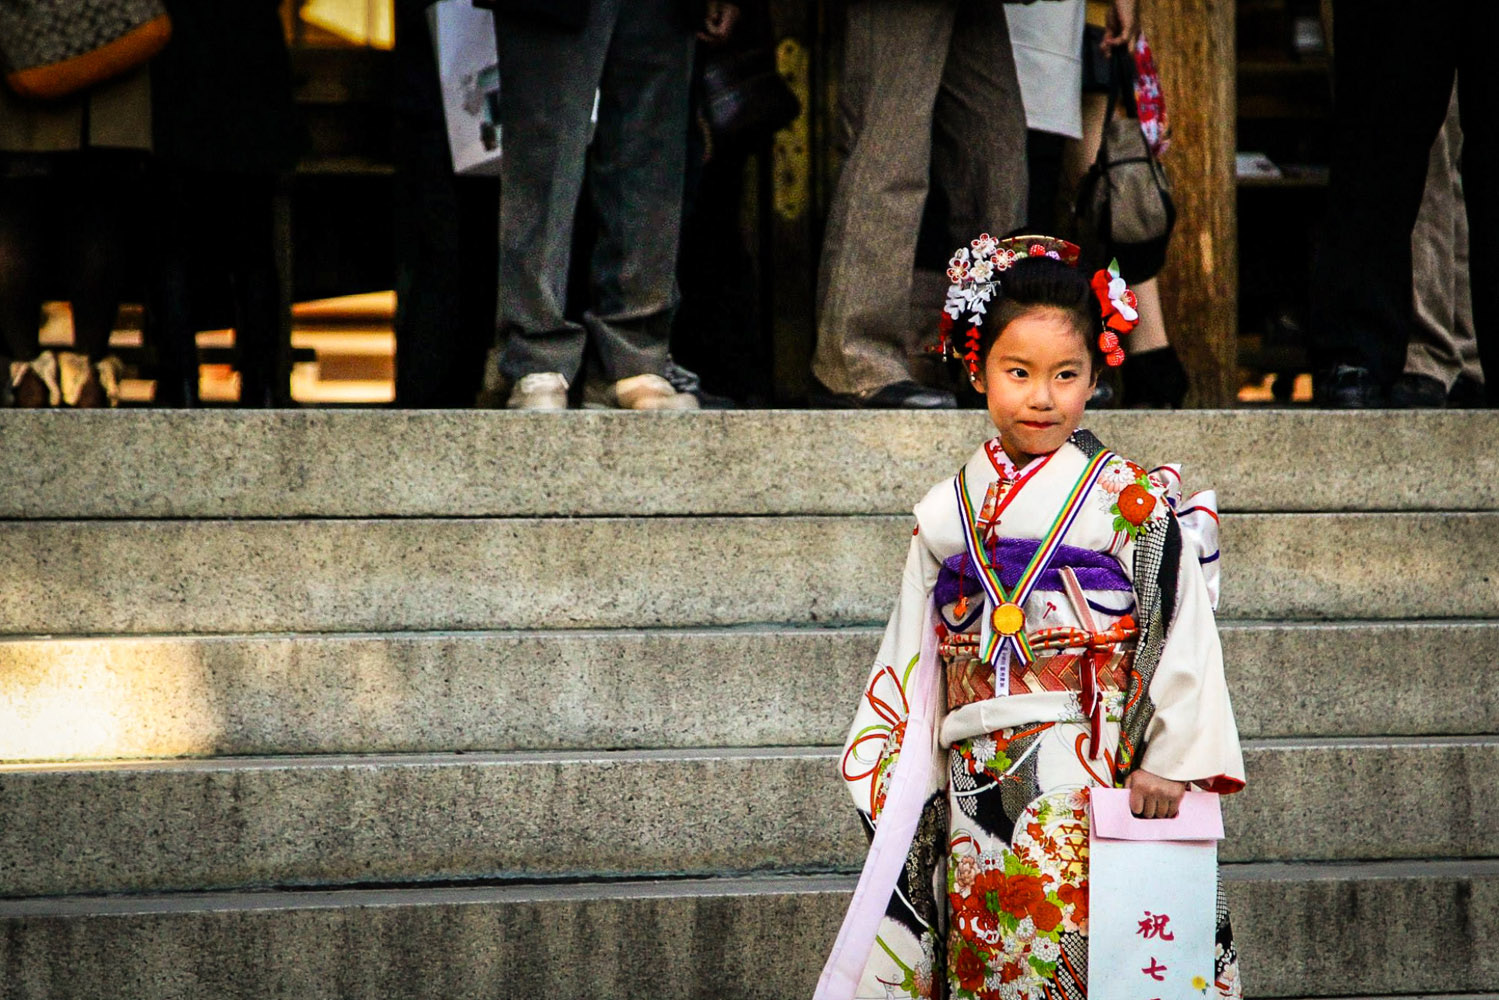 Young girl in a kimono stands on the main steps of a Shinto shrine, Tokyo